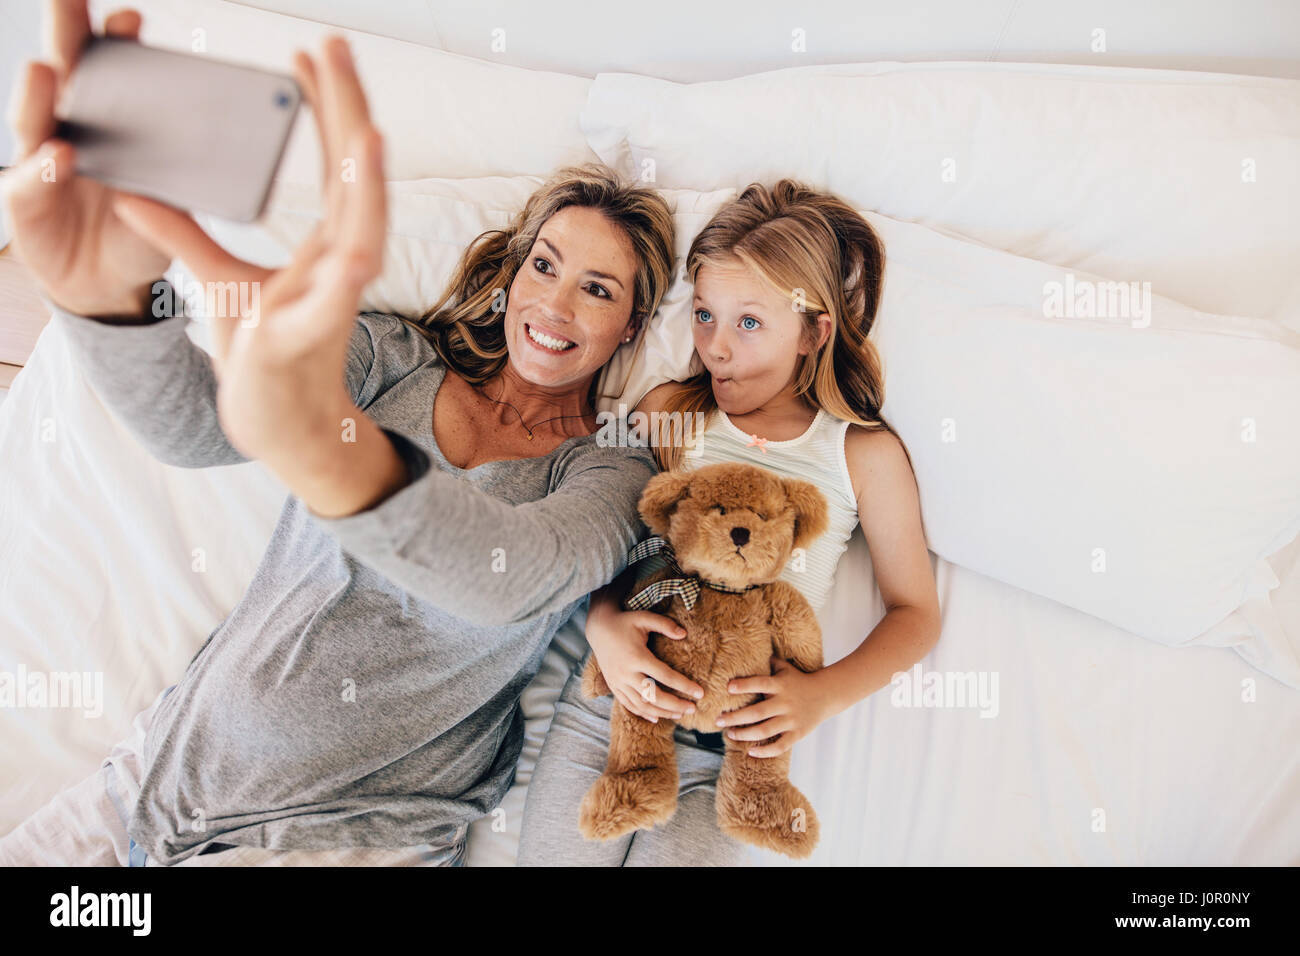 Mother and daughter lying on bed and taking self portrait with mobile phone. Woman taking selfie with a little girl - Stock Image